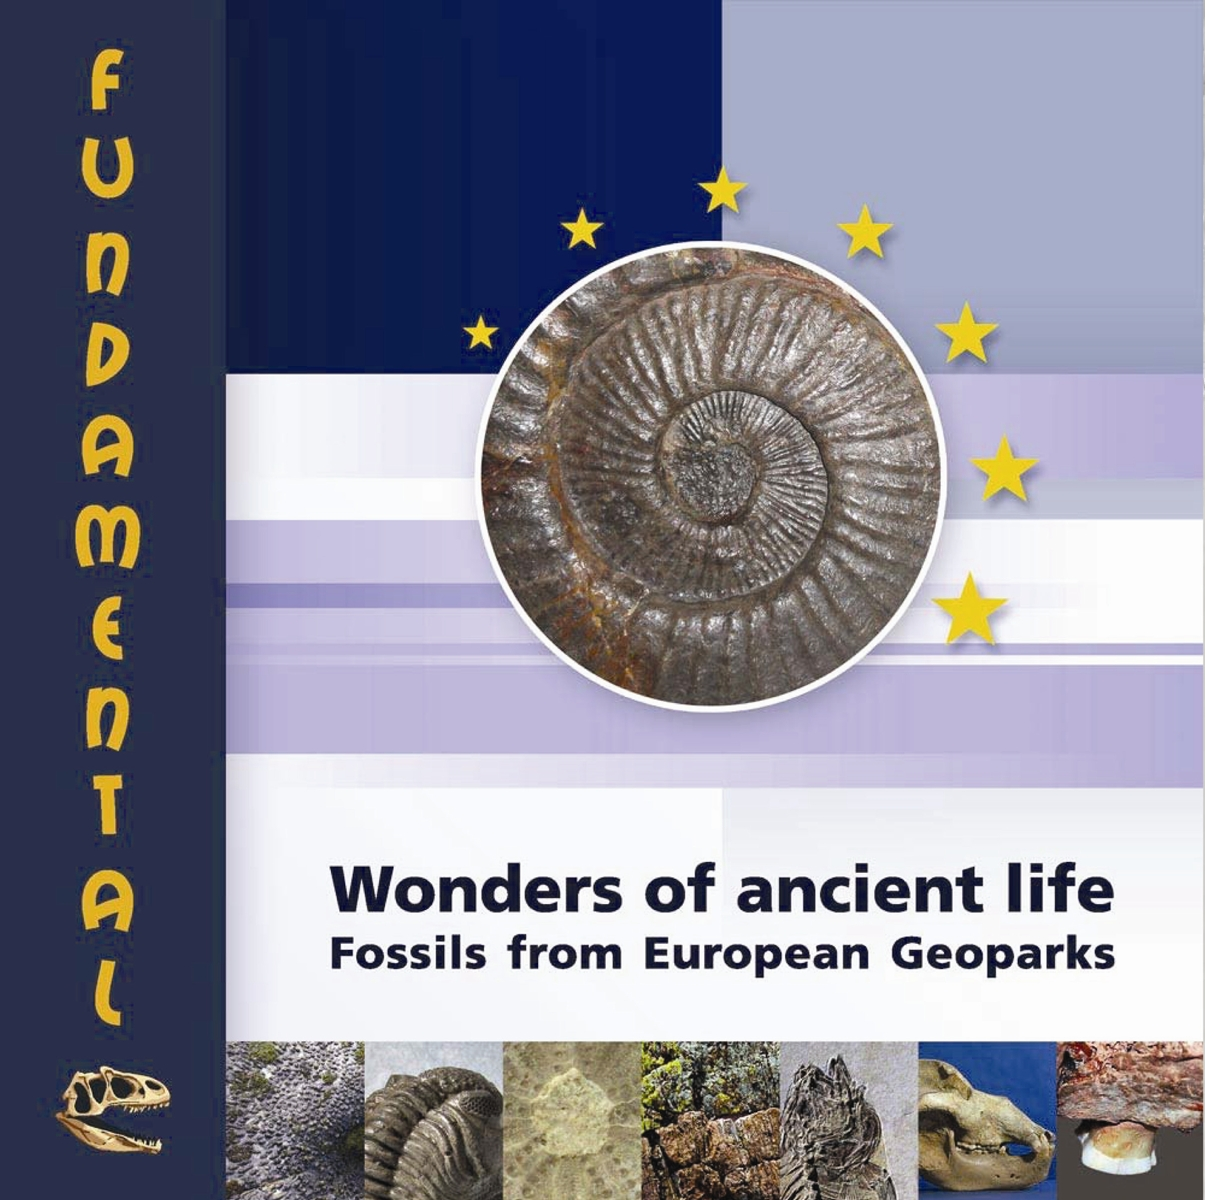 Copia de WONDERS OF ANCIENT LIFE portada